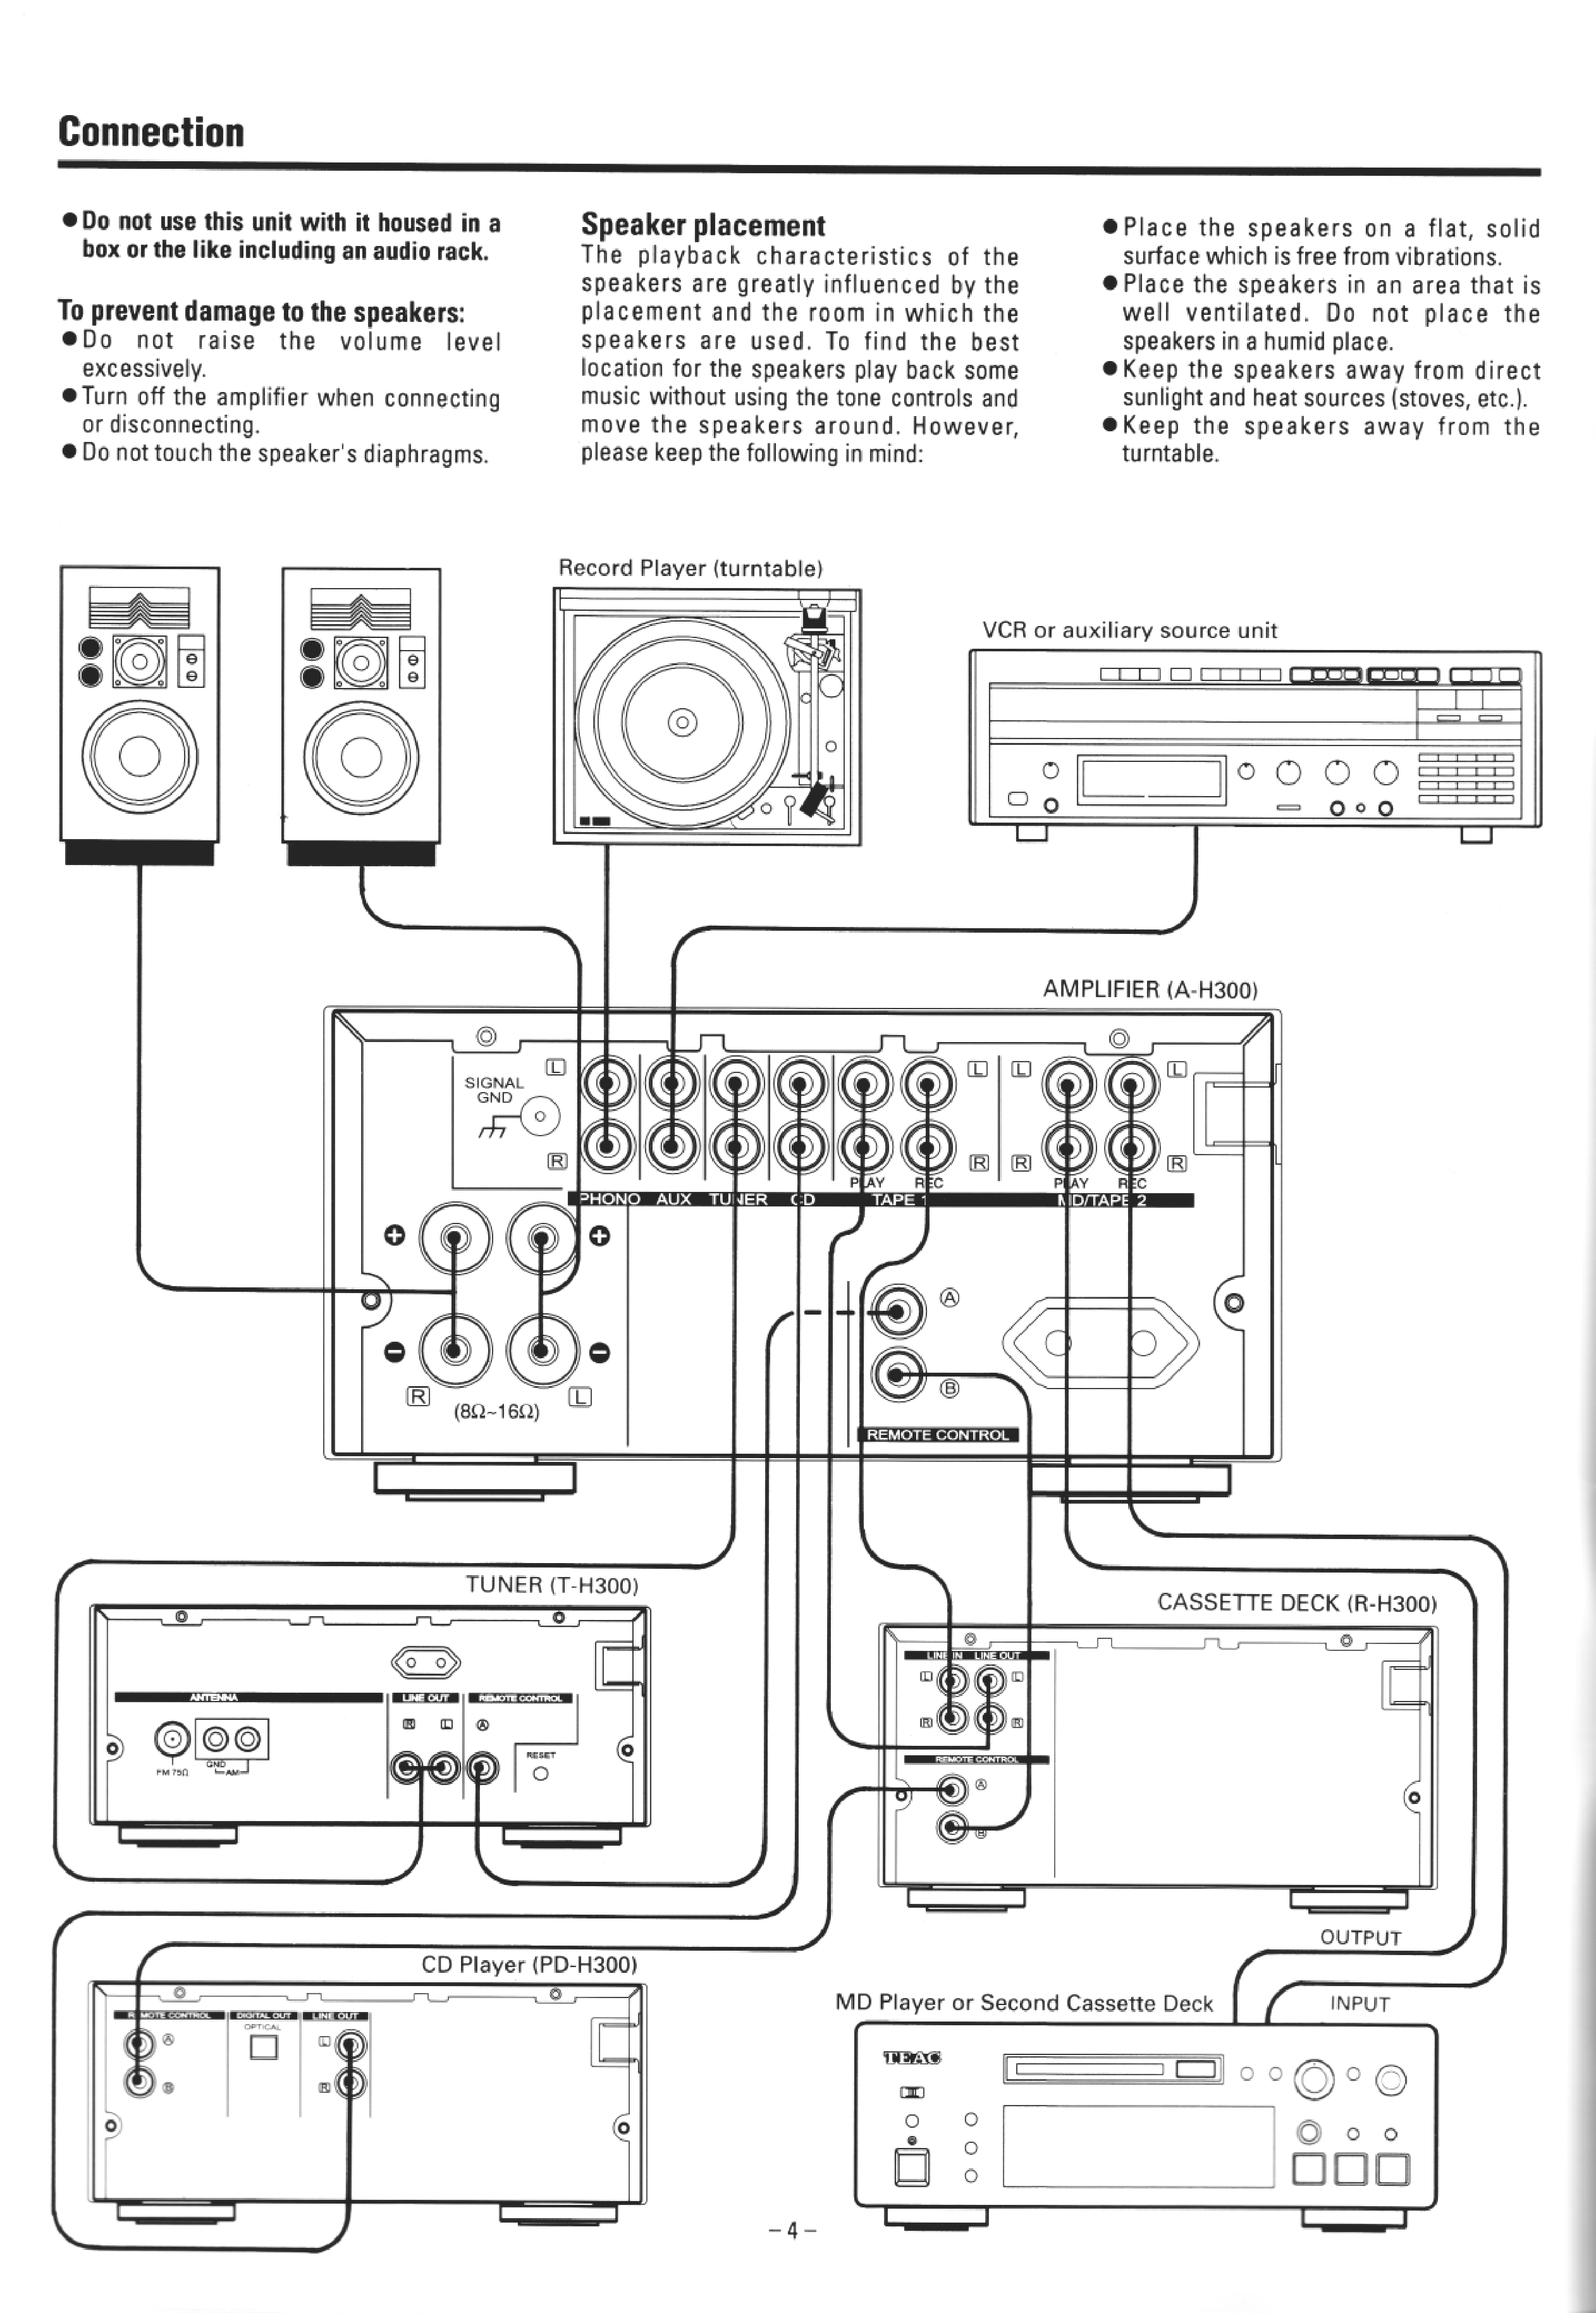 Hayward h300 Owners Manual on